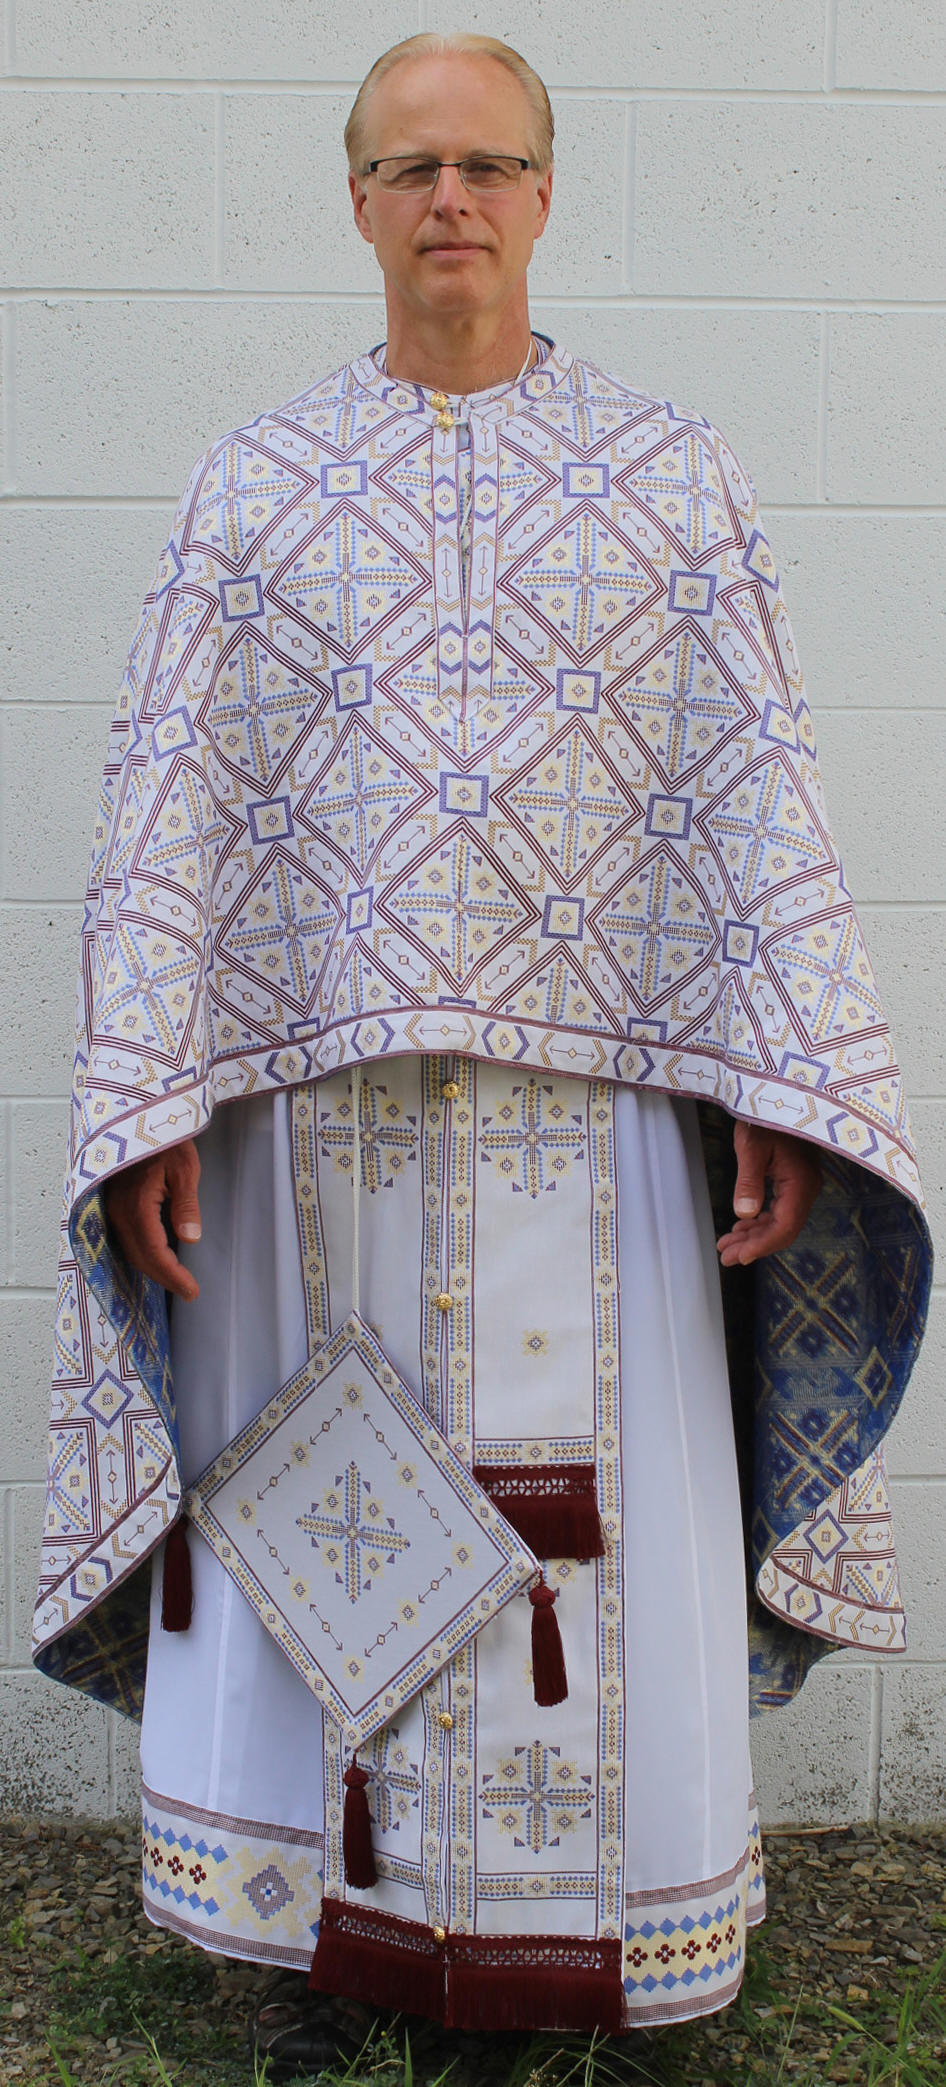 Tri Color Priest Vestments